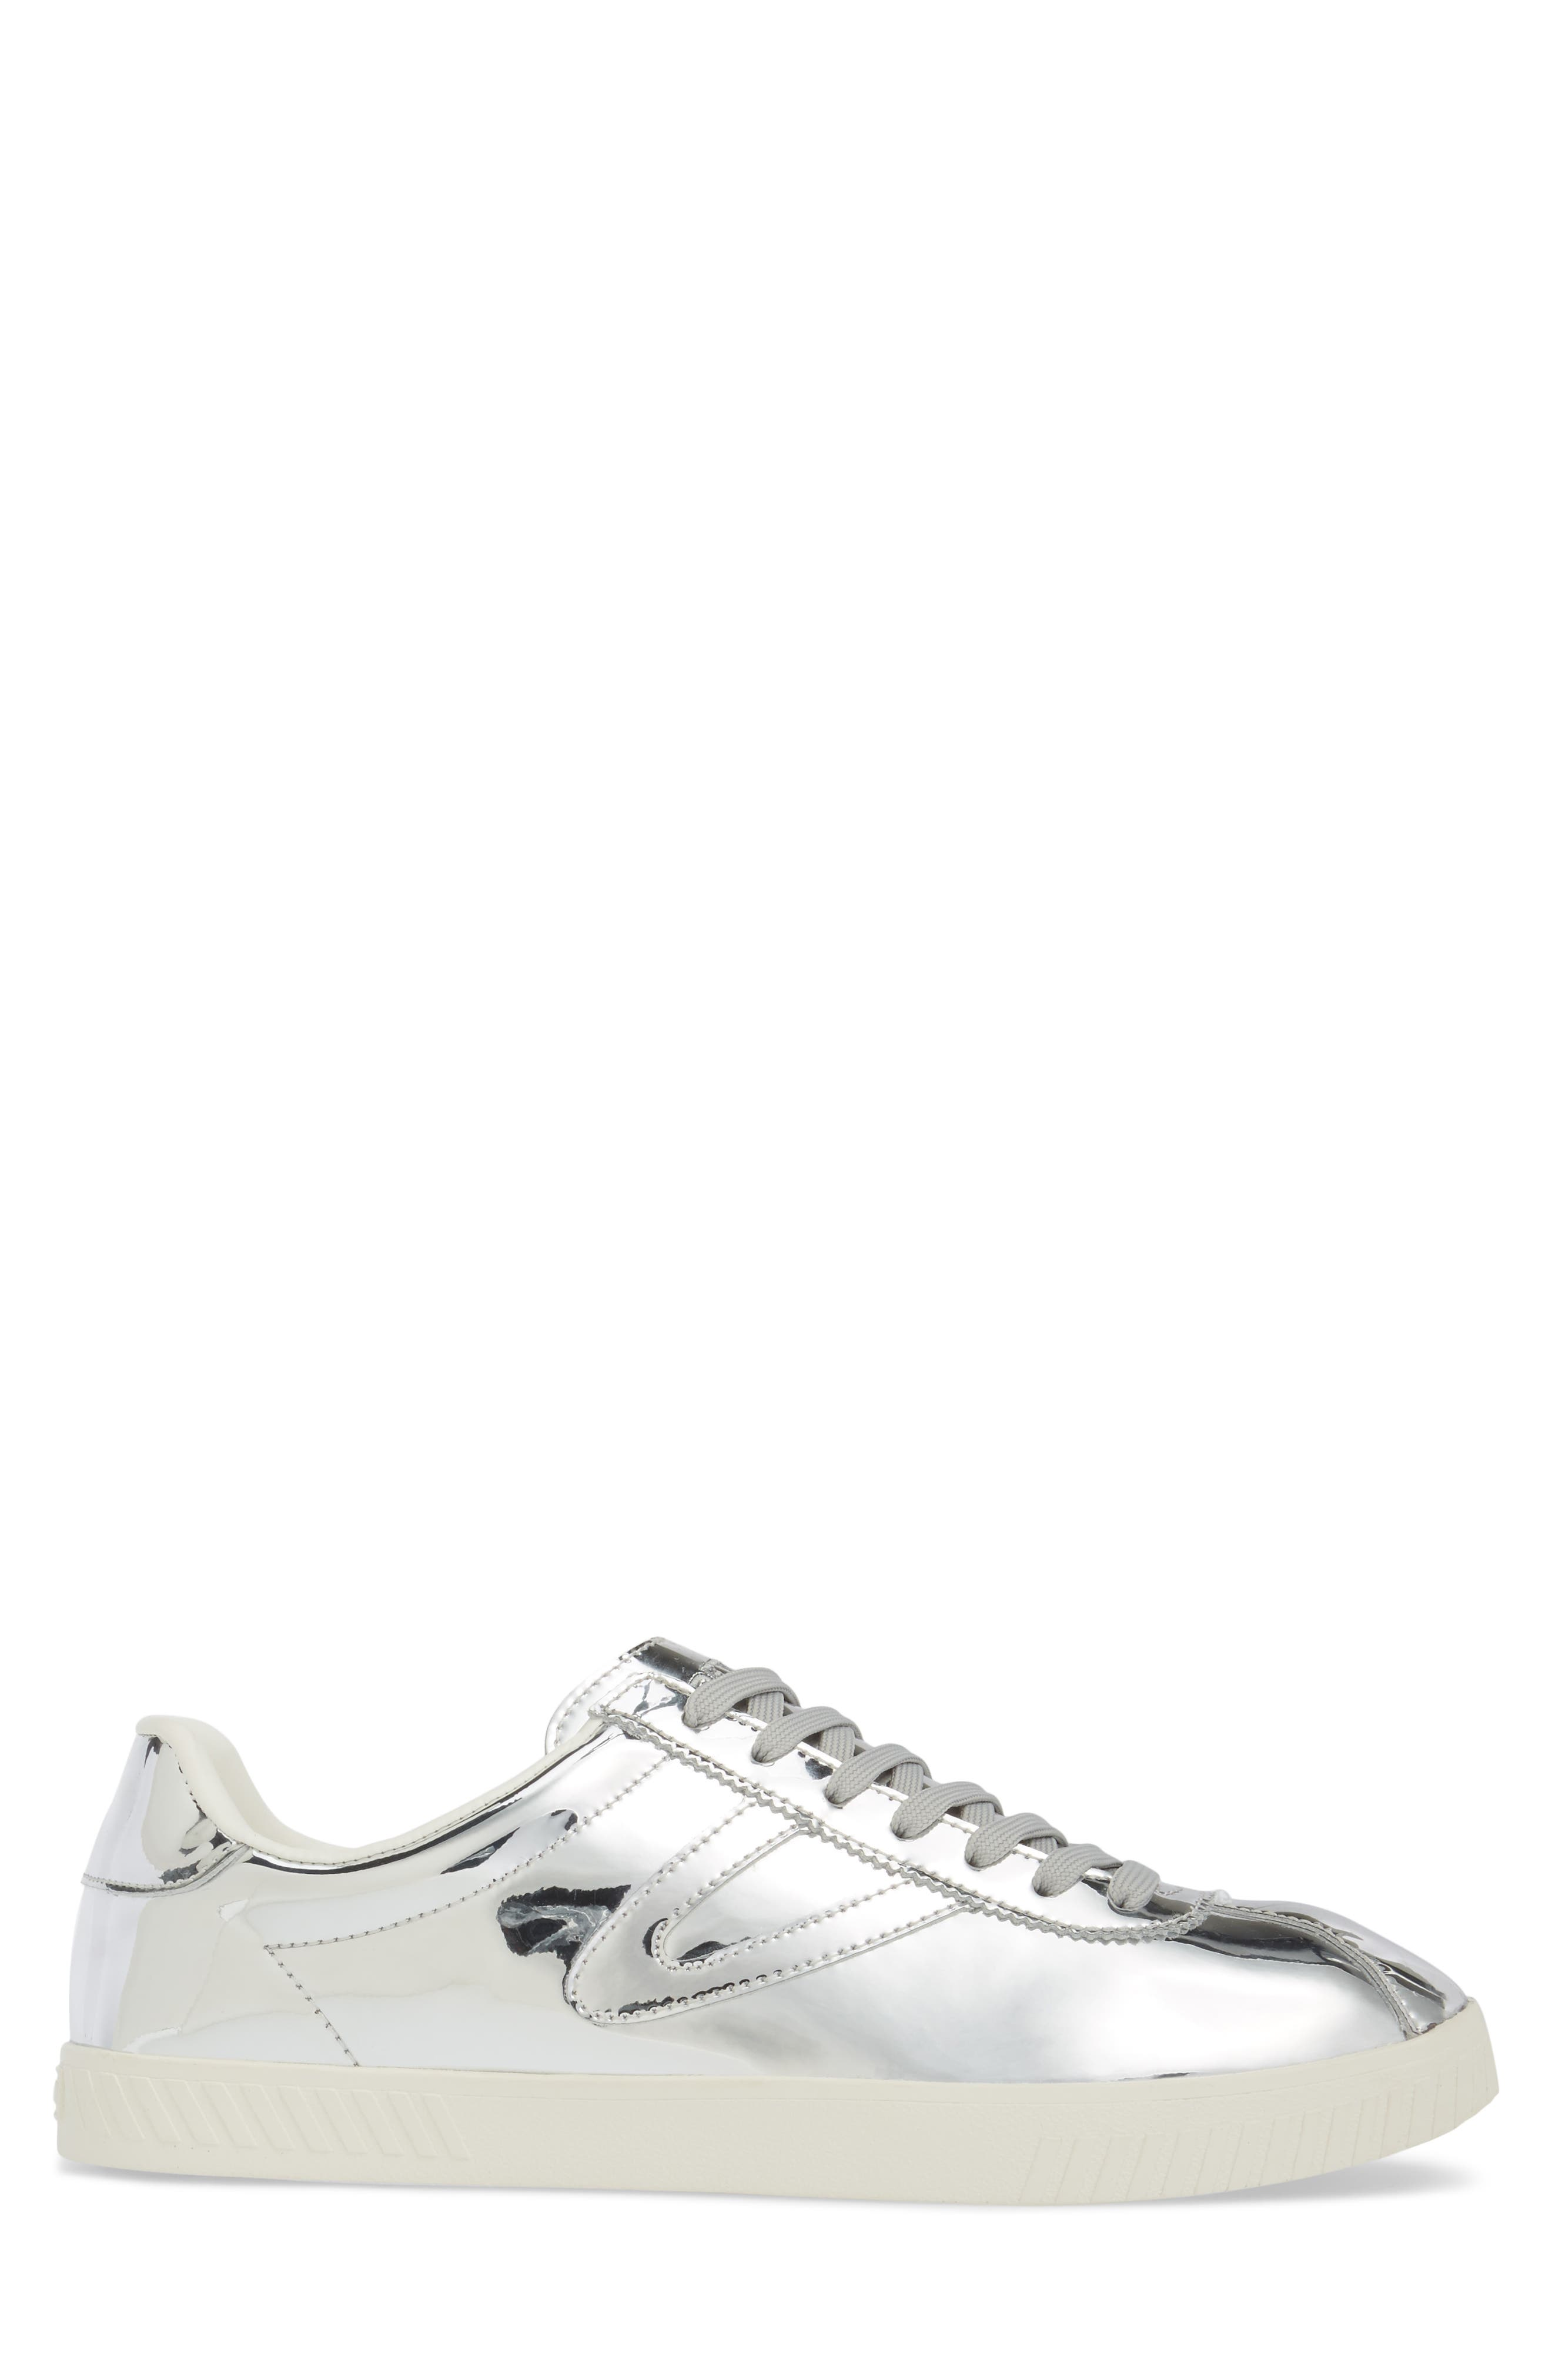 Camden 2 Sneaker,                             Alternate thumbnail 3, color,                             SILVER LEATHER